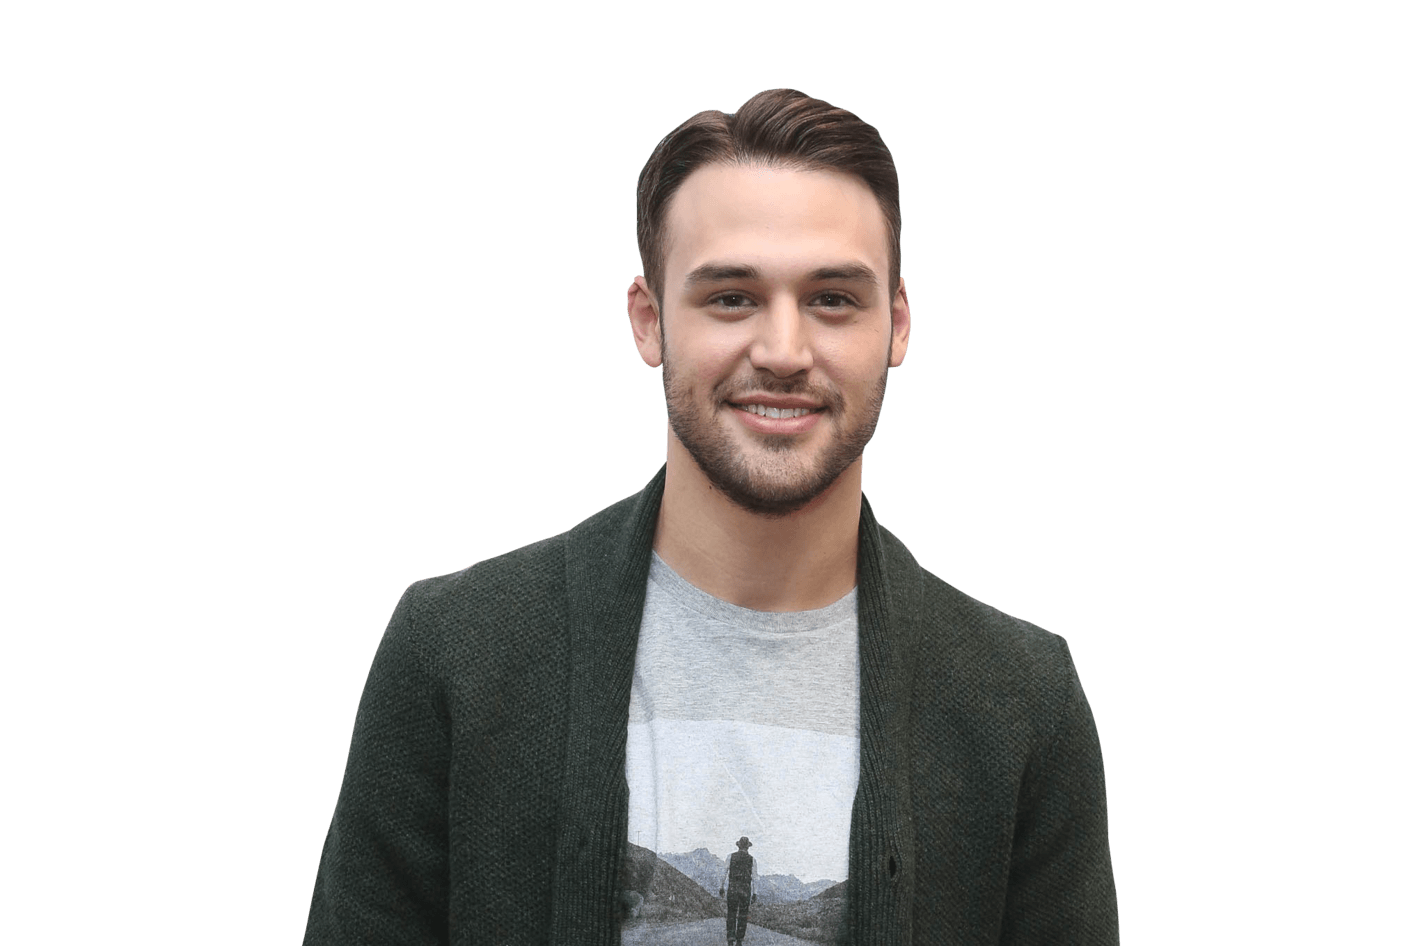 vulture.com - Marcus Jones - Ryan Guzman on The Boy Next Door and Why There Is So Much Talk of Cookies